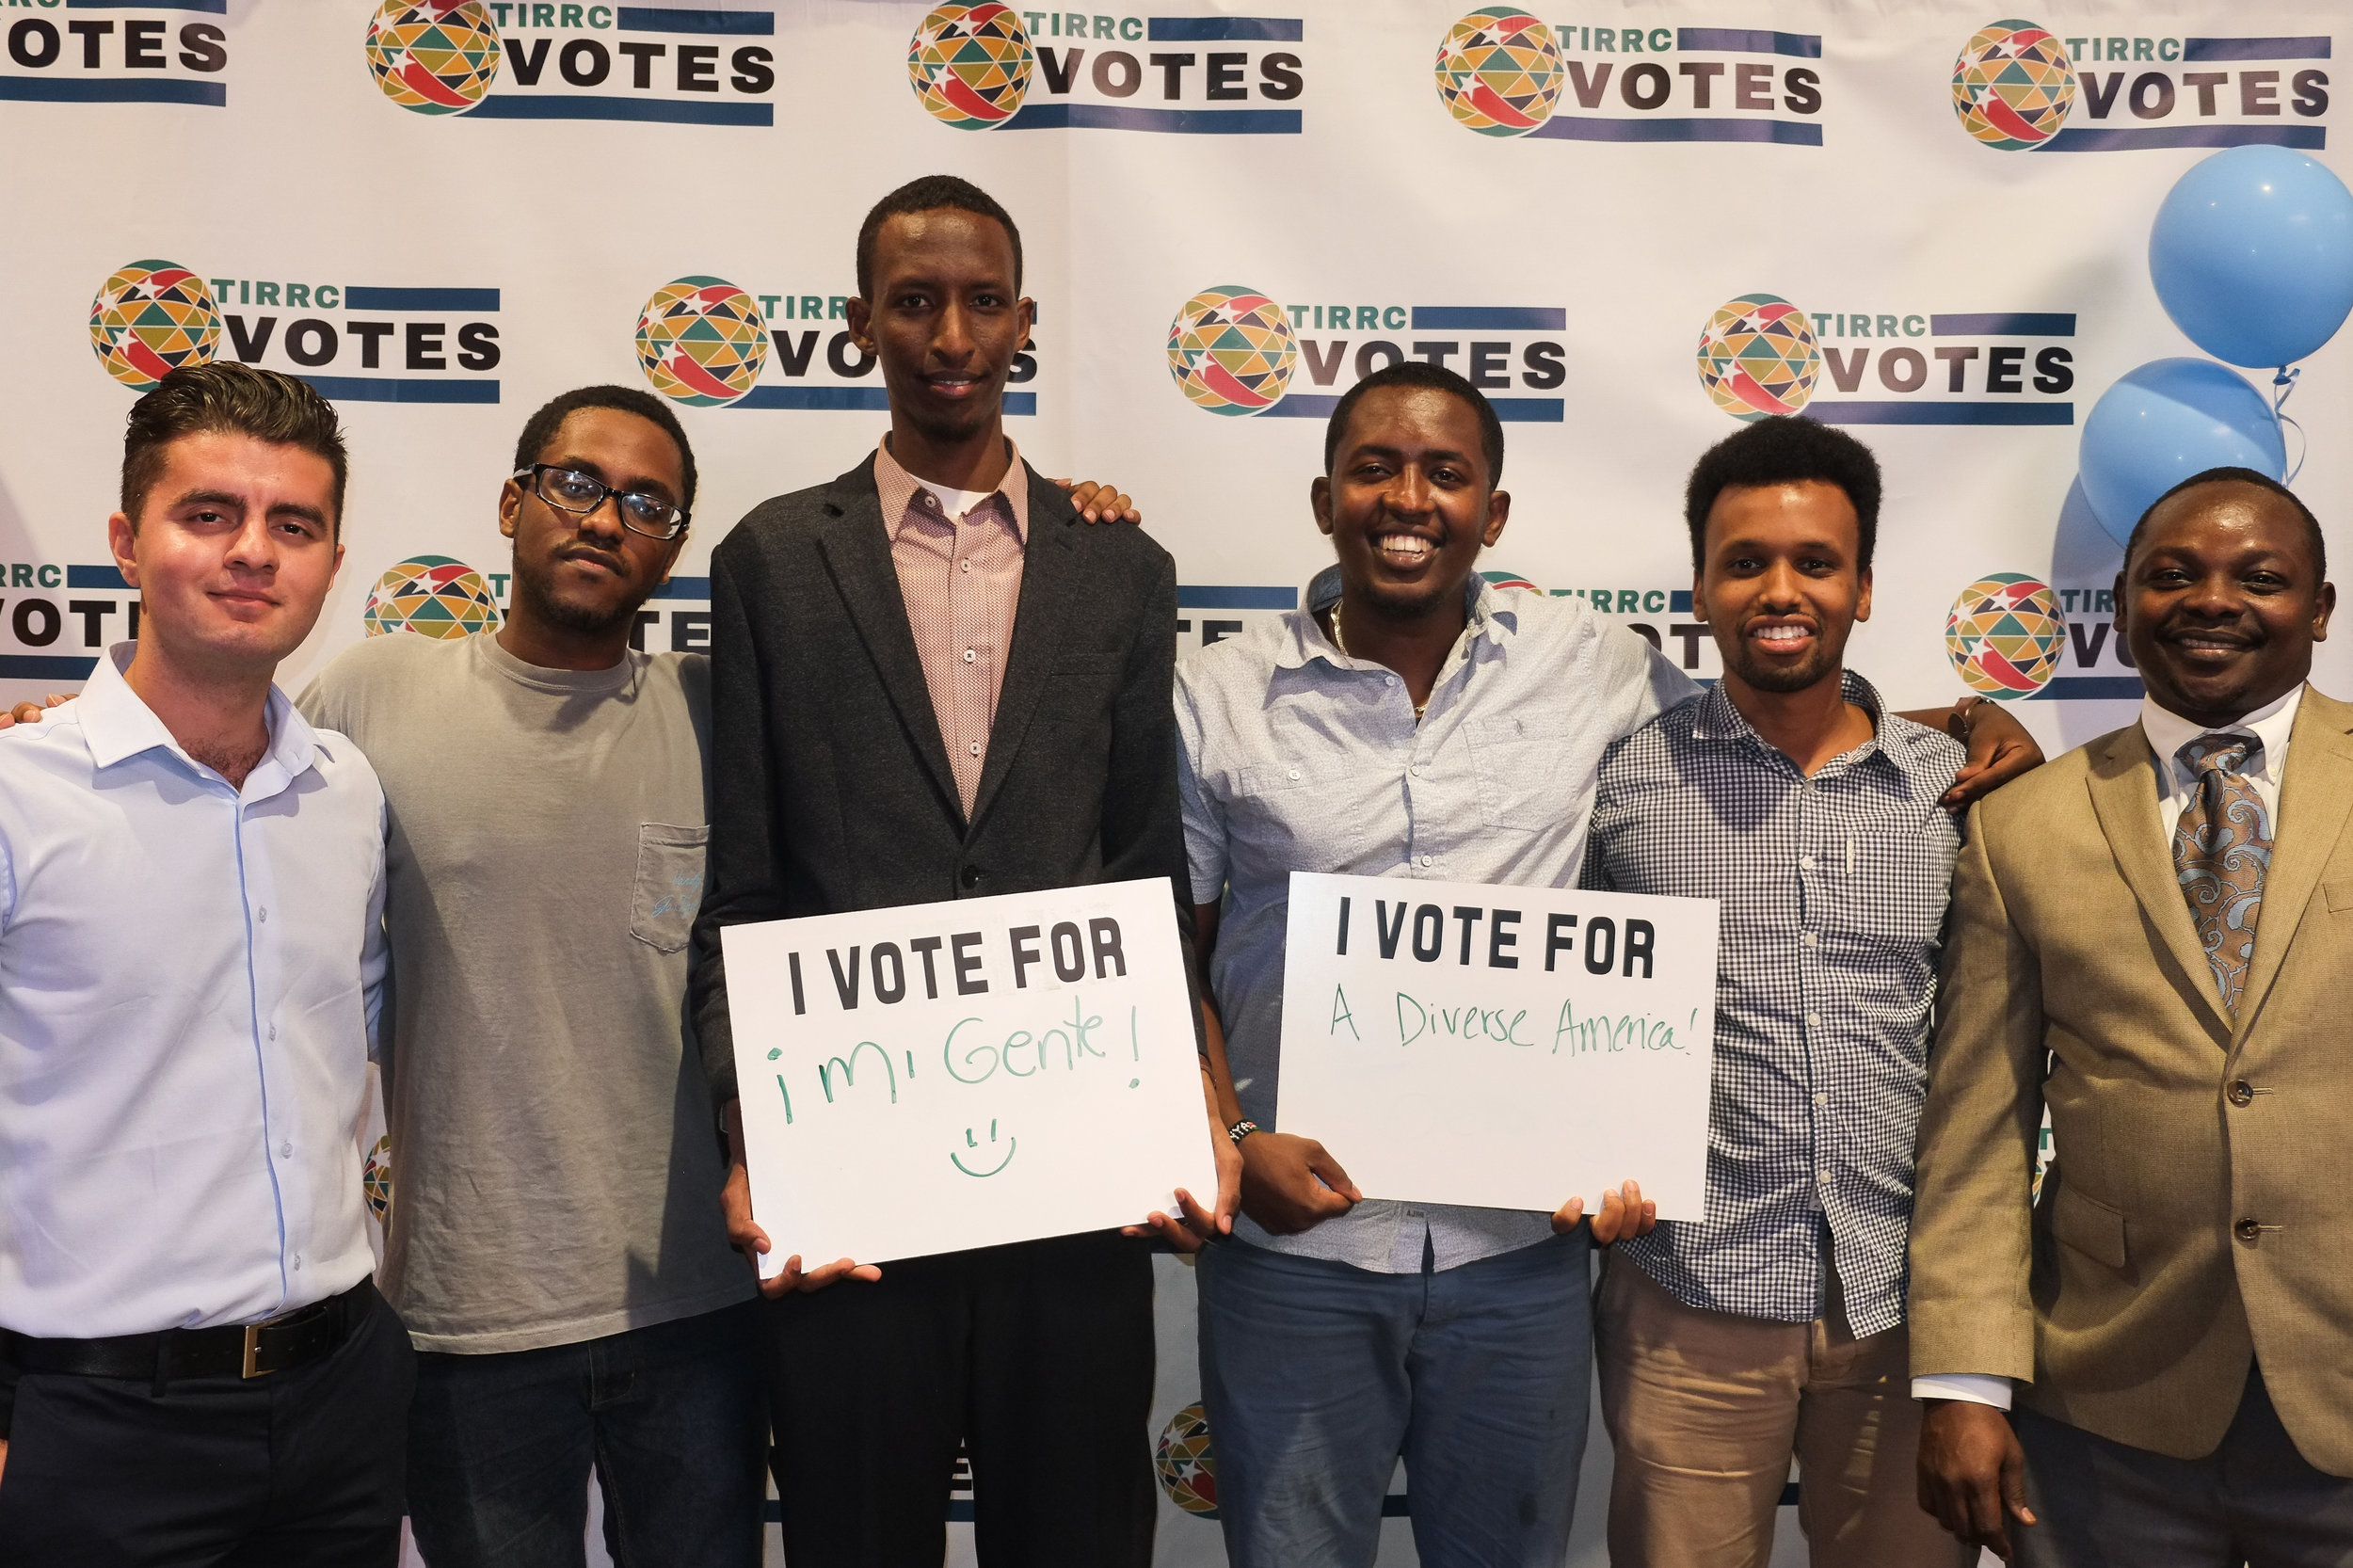 TIRRCVotes-PhotoBooth-26.jpg